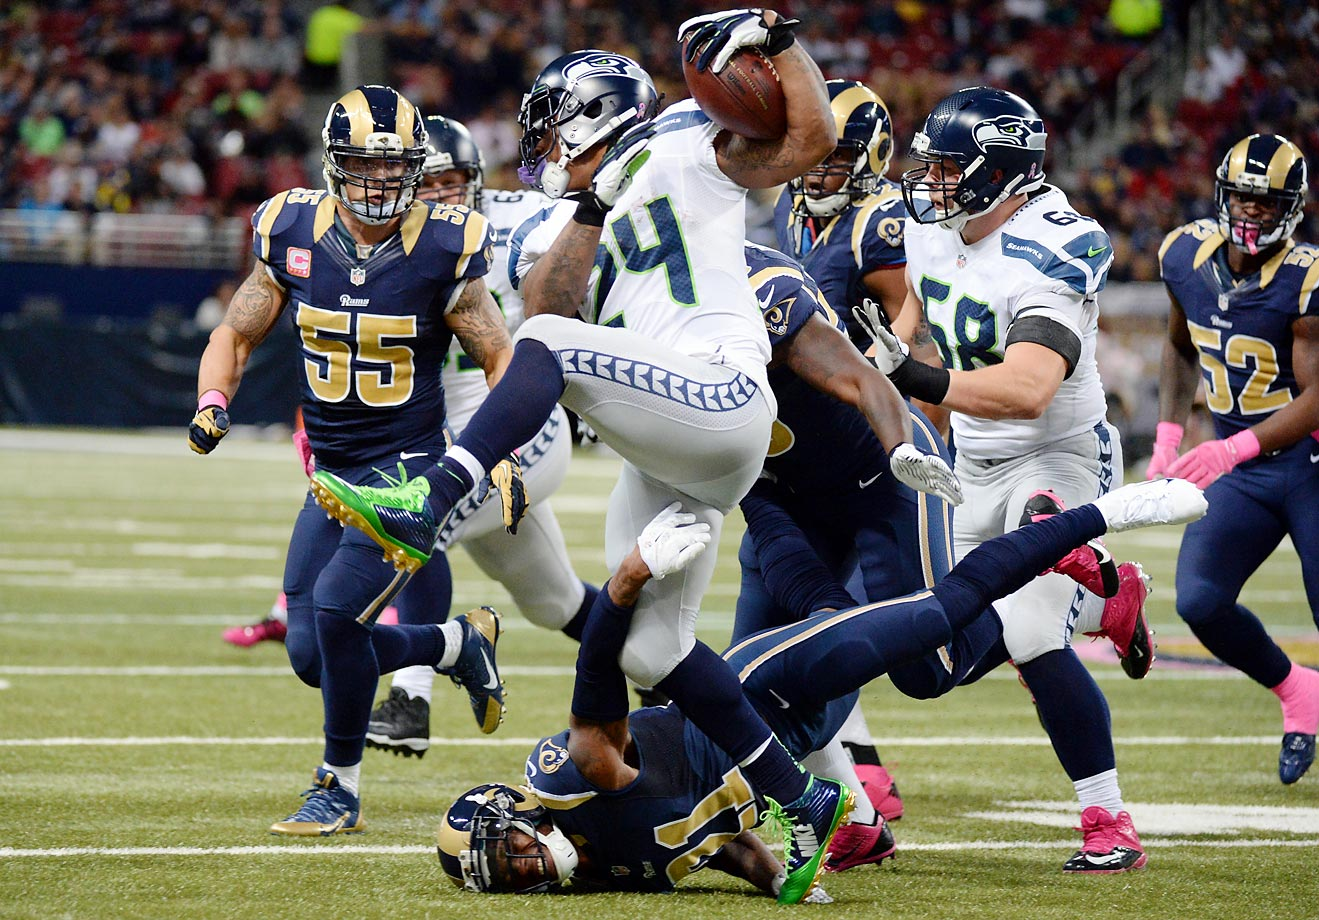 Marshawn Lynch rushed for 53 yards in the Seahawks' 28-26 loss to the Rams.